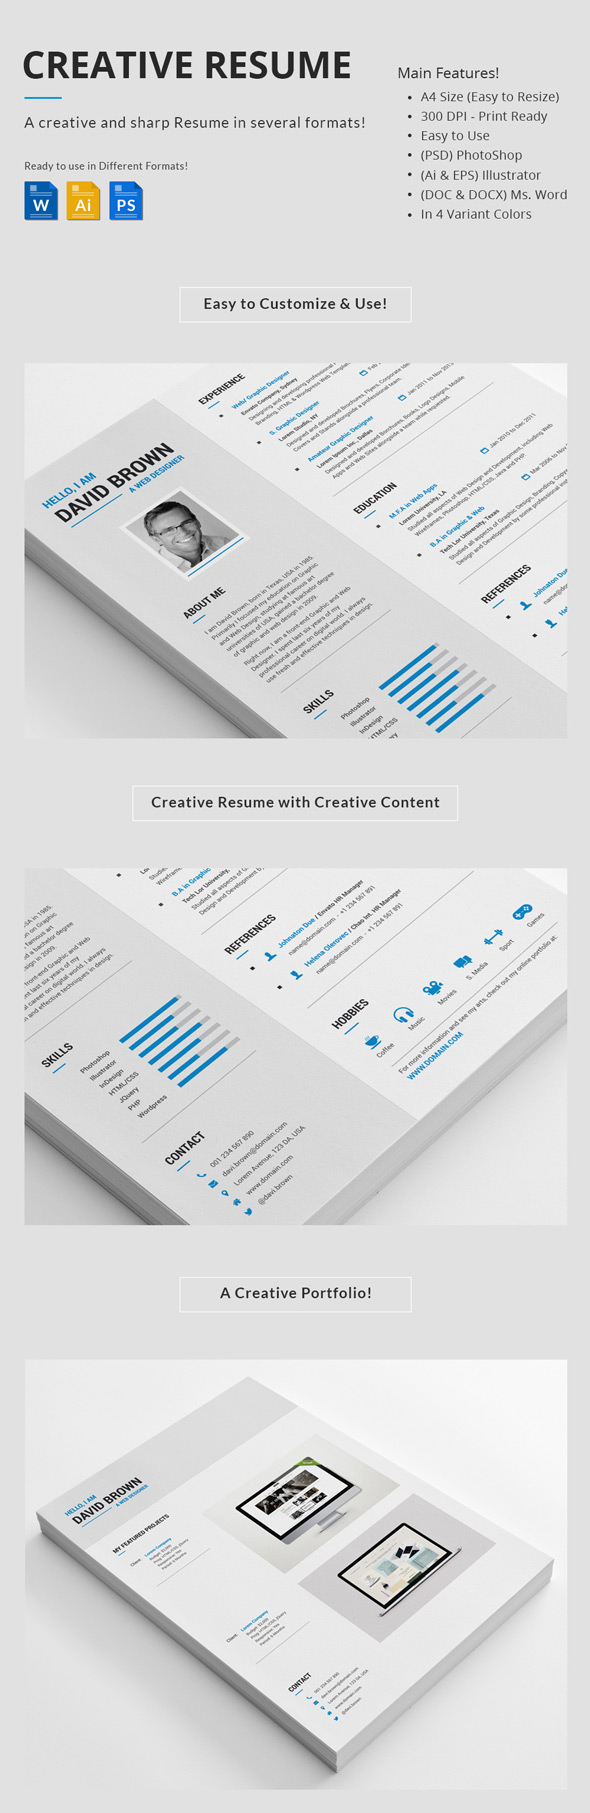 professional creative resume set - Unique Resume Examples